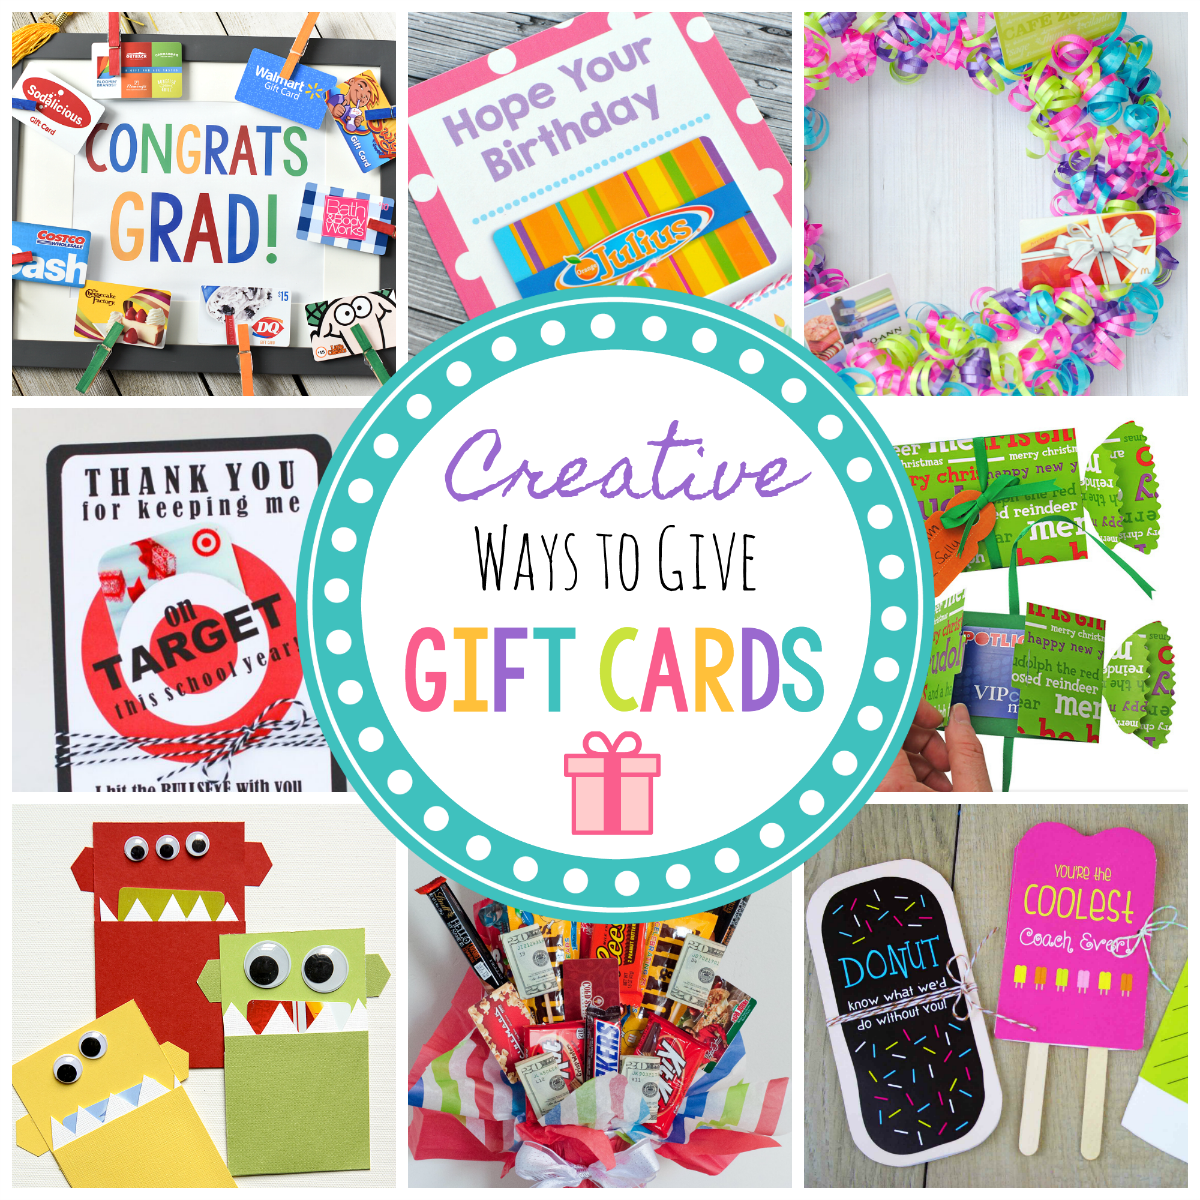 Fun & Creative Ways to Give Gift Cards